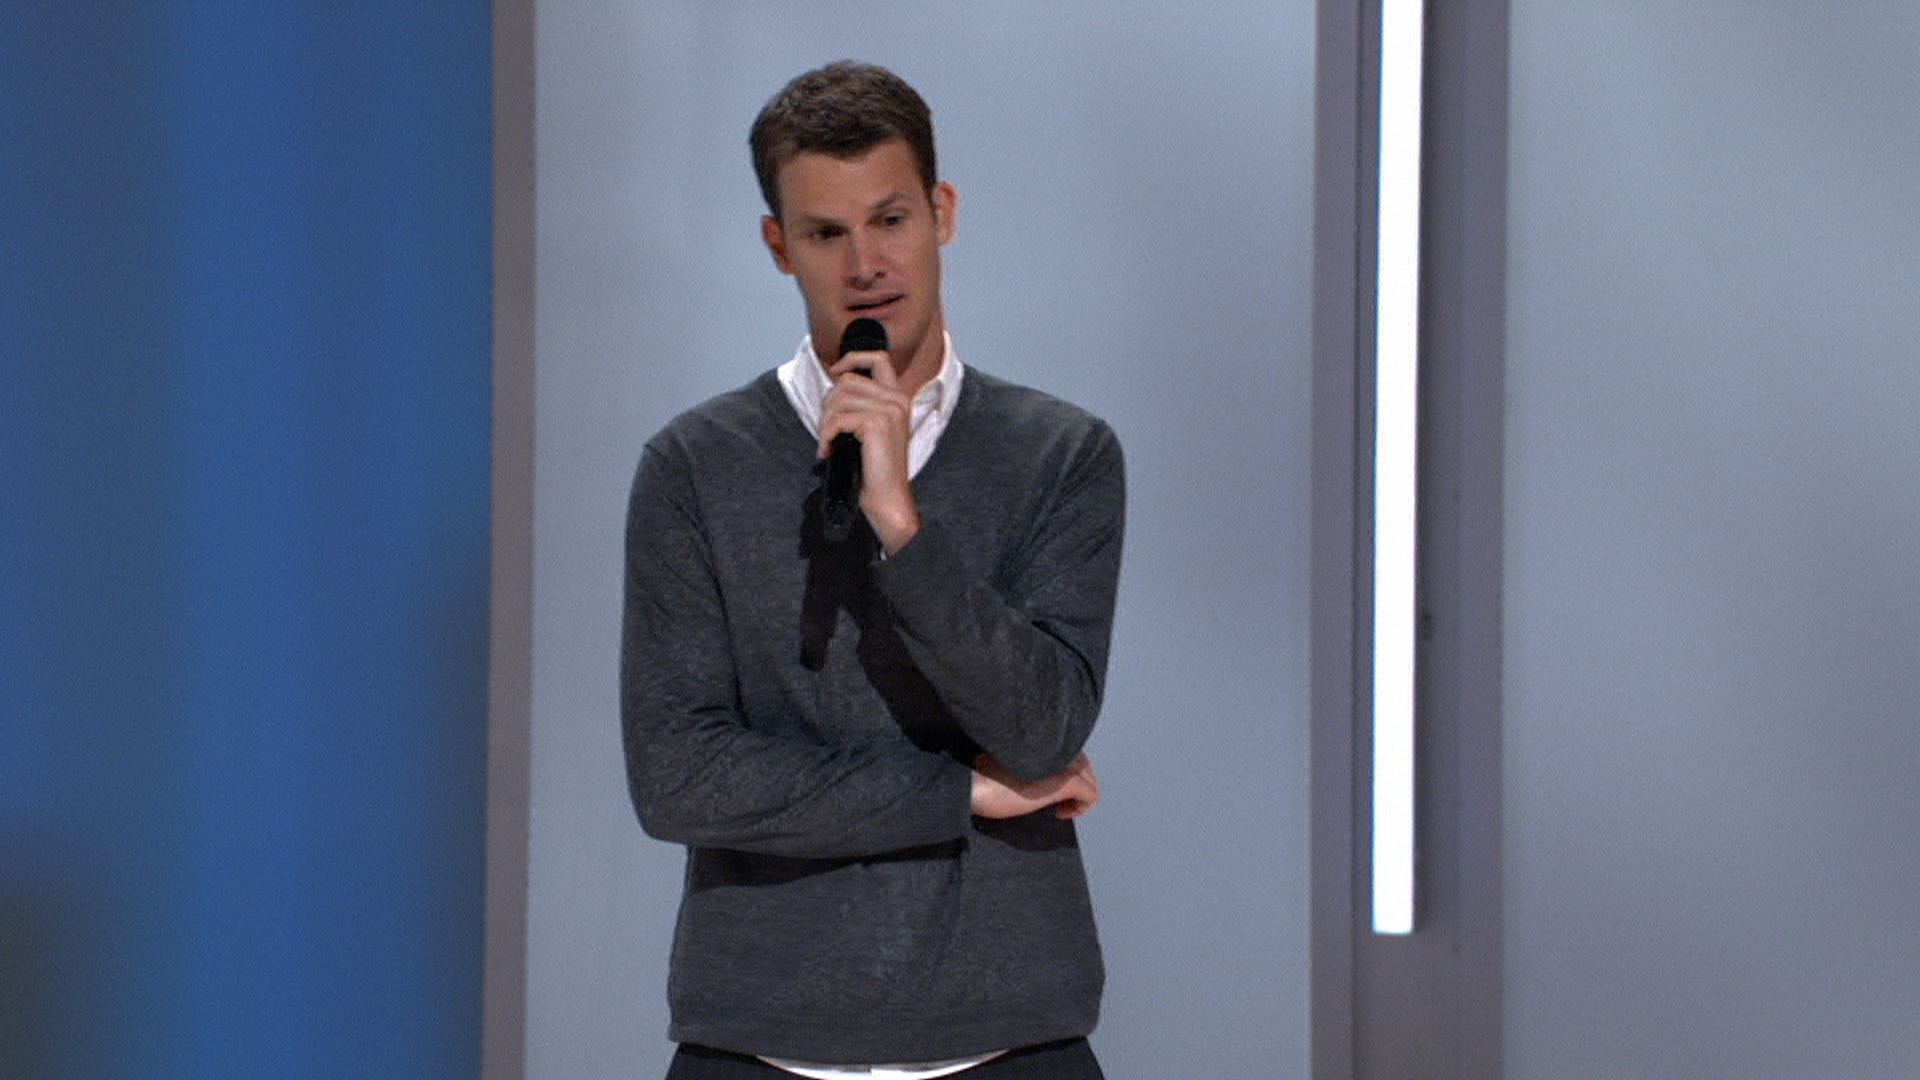 Daniel Tosh - Number Two